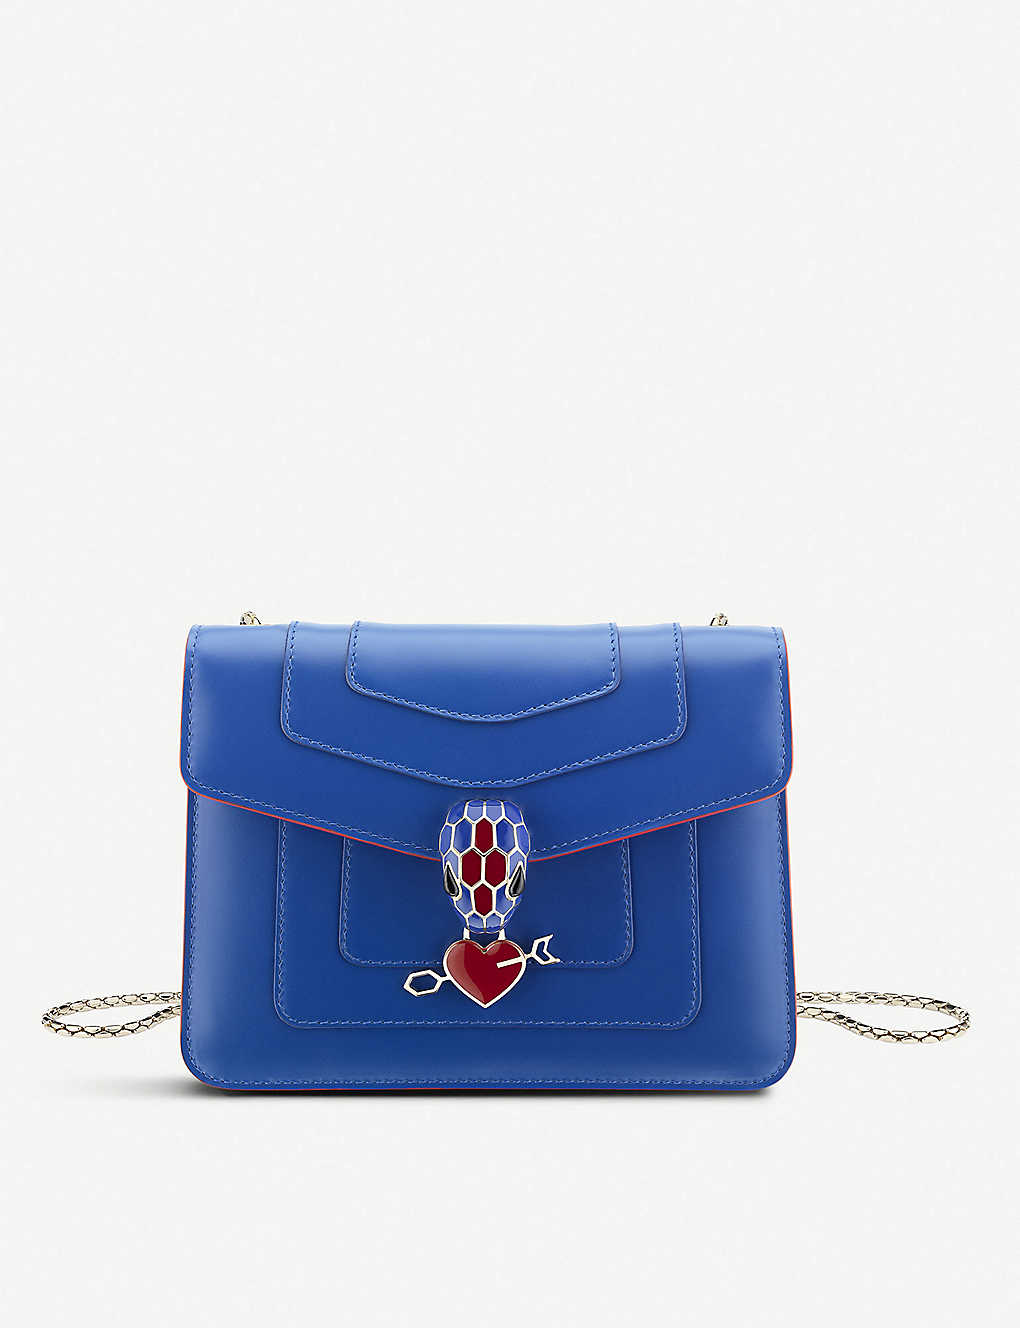 BVLGARI: Electro Love Serpenti Forever leather shoulder bag